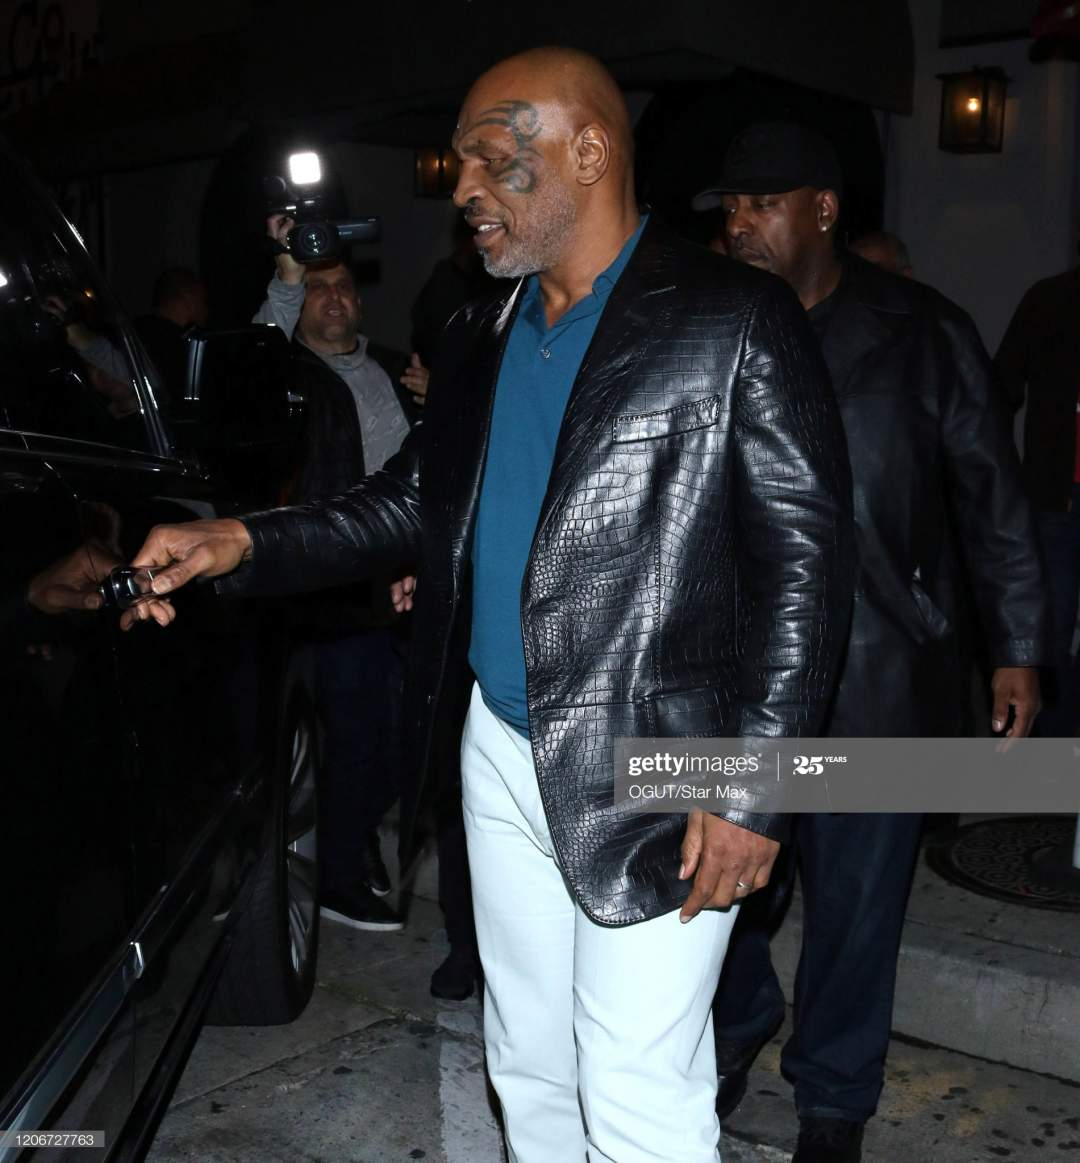 Mike Tyson Is Seen On March 12 2020 In Los Angeles California Picture Id1206727763?s=28